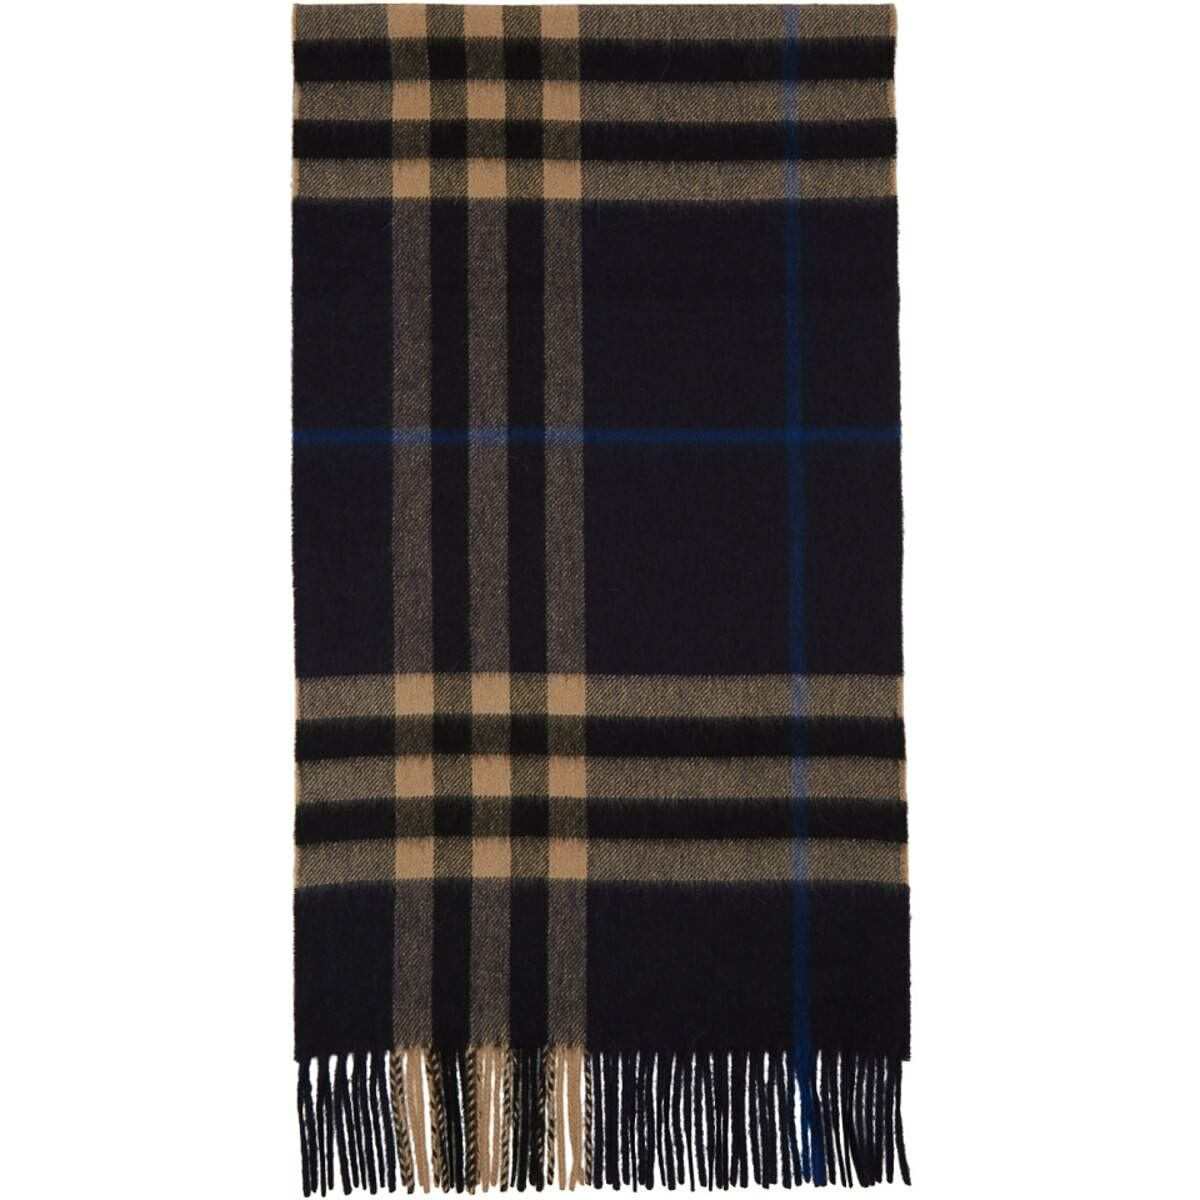 Burberry Indigo Cashmere Classic Check Scarf Ssense USA MEN Men ACCESSORIES Mens SCARFS